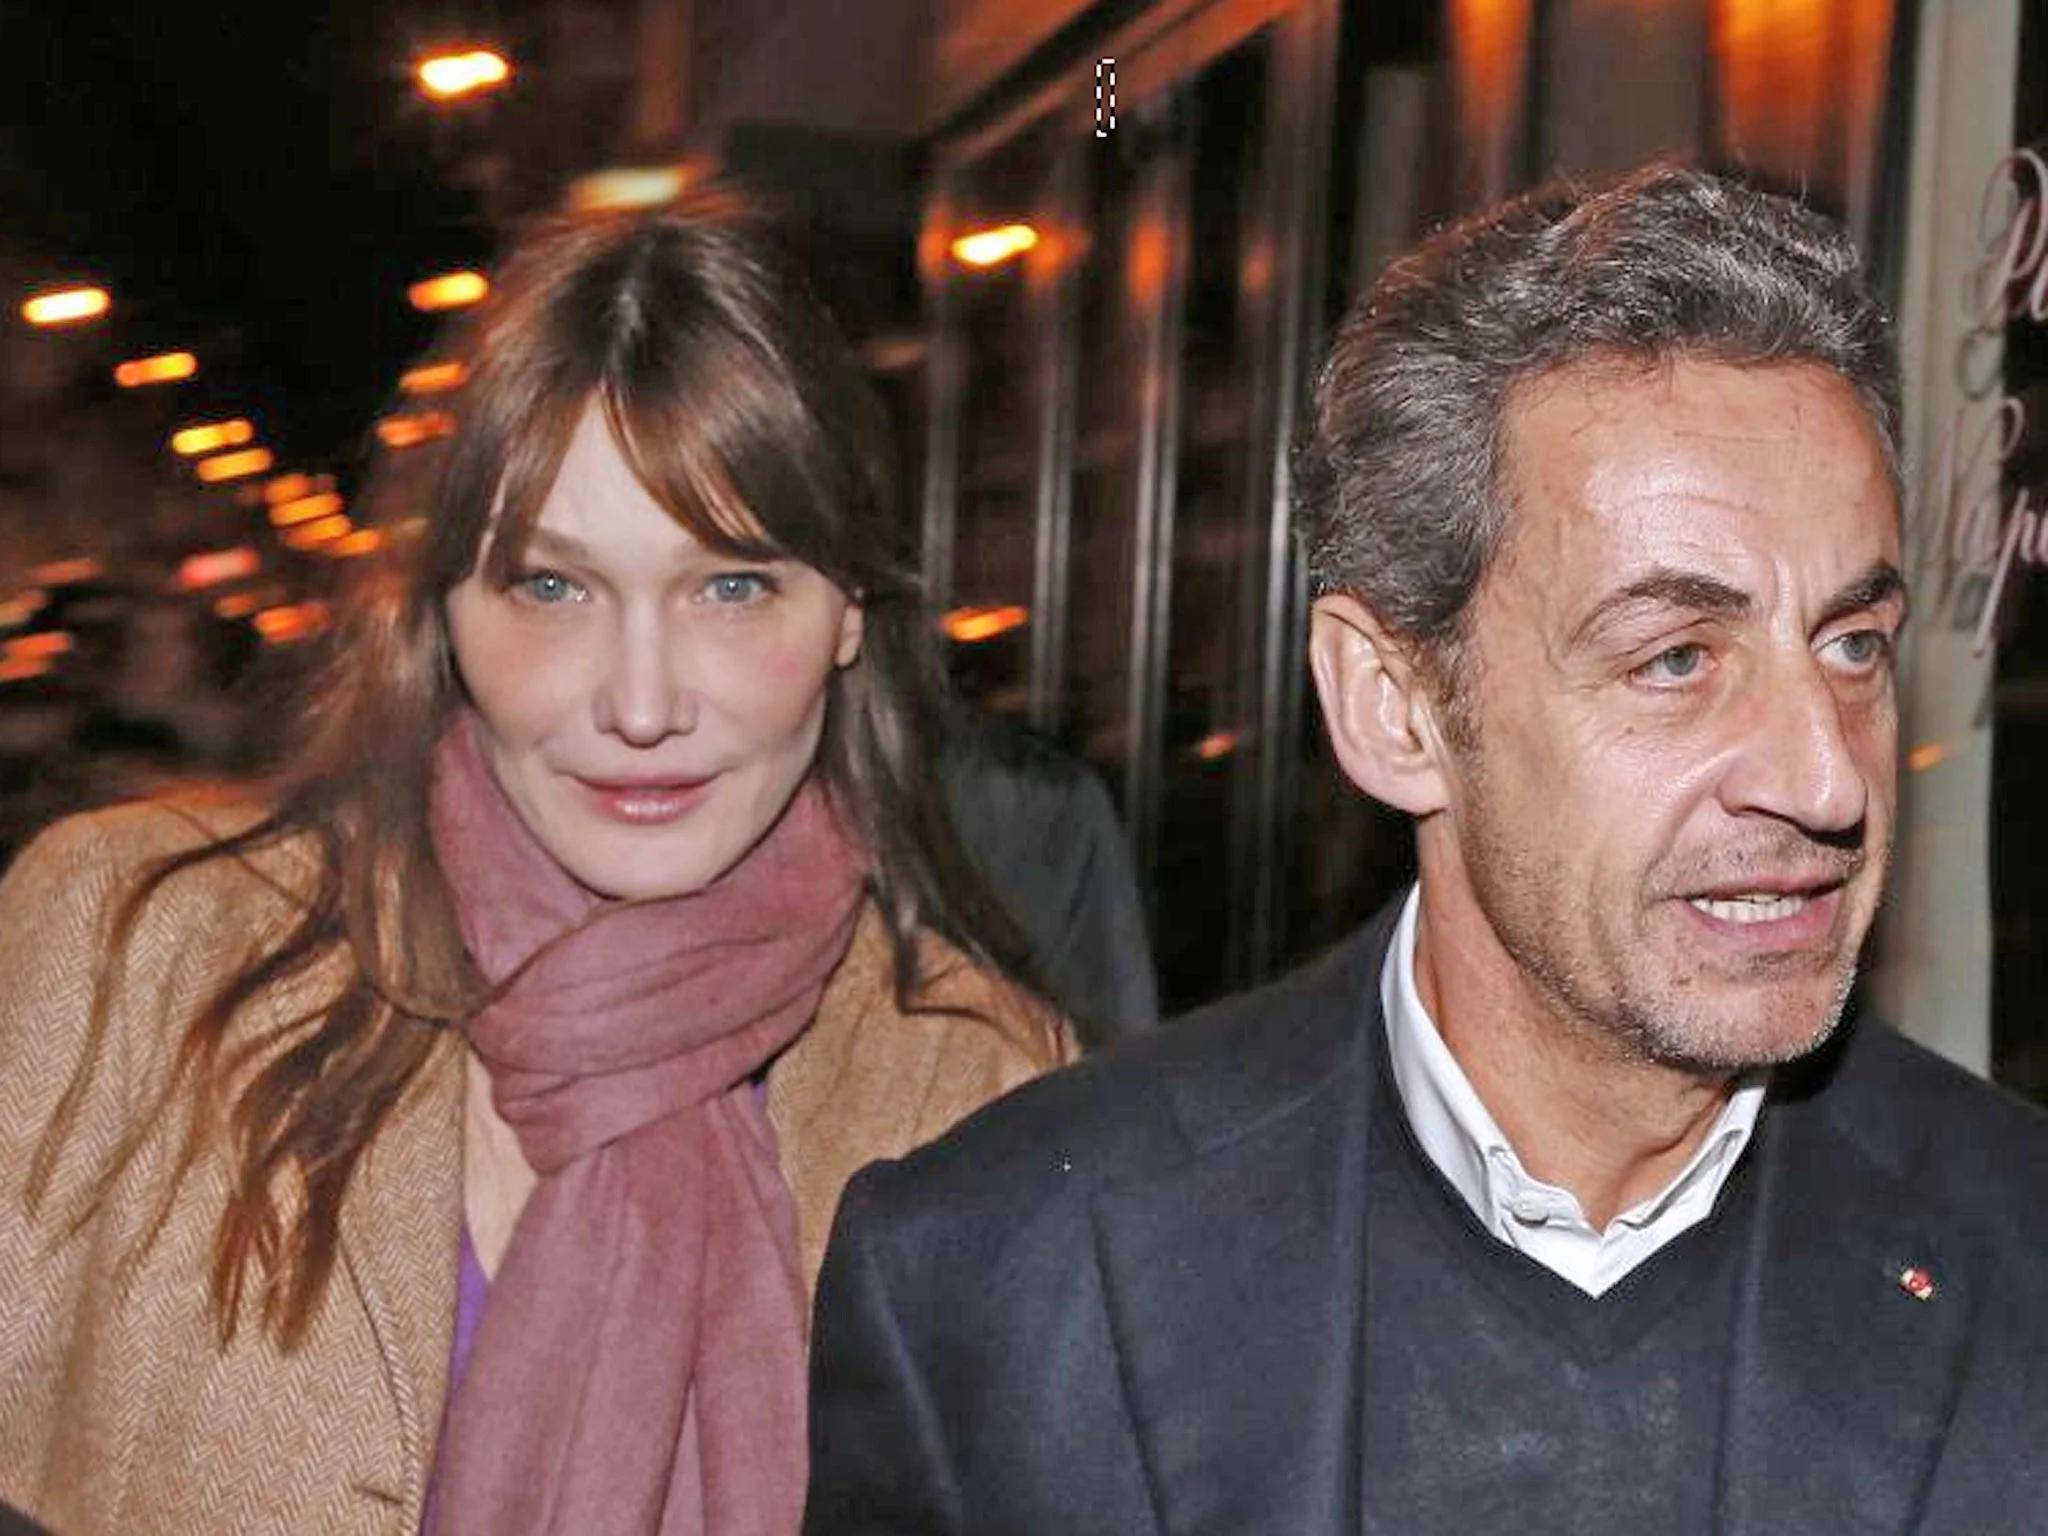 225146 likes · 687 talking about this. Tearful Carla Bruni Rejects Claim Nicolas Sarkozy Badgered L Oreal Heiress Liliane Bettencourt The Independent The Independent